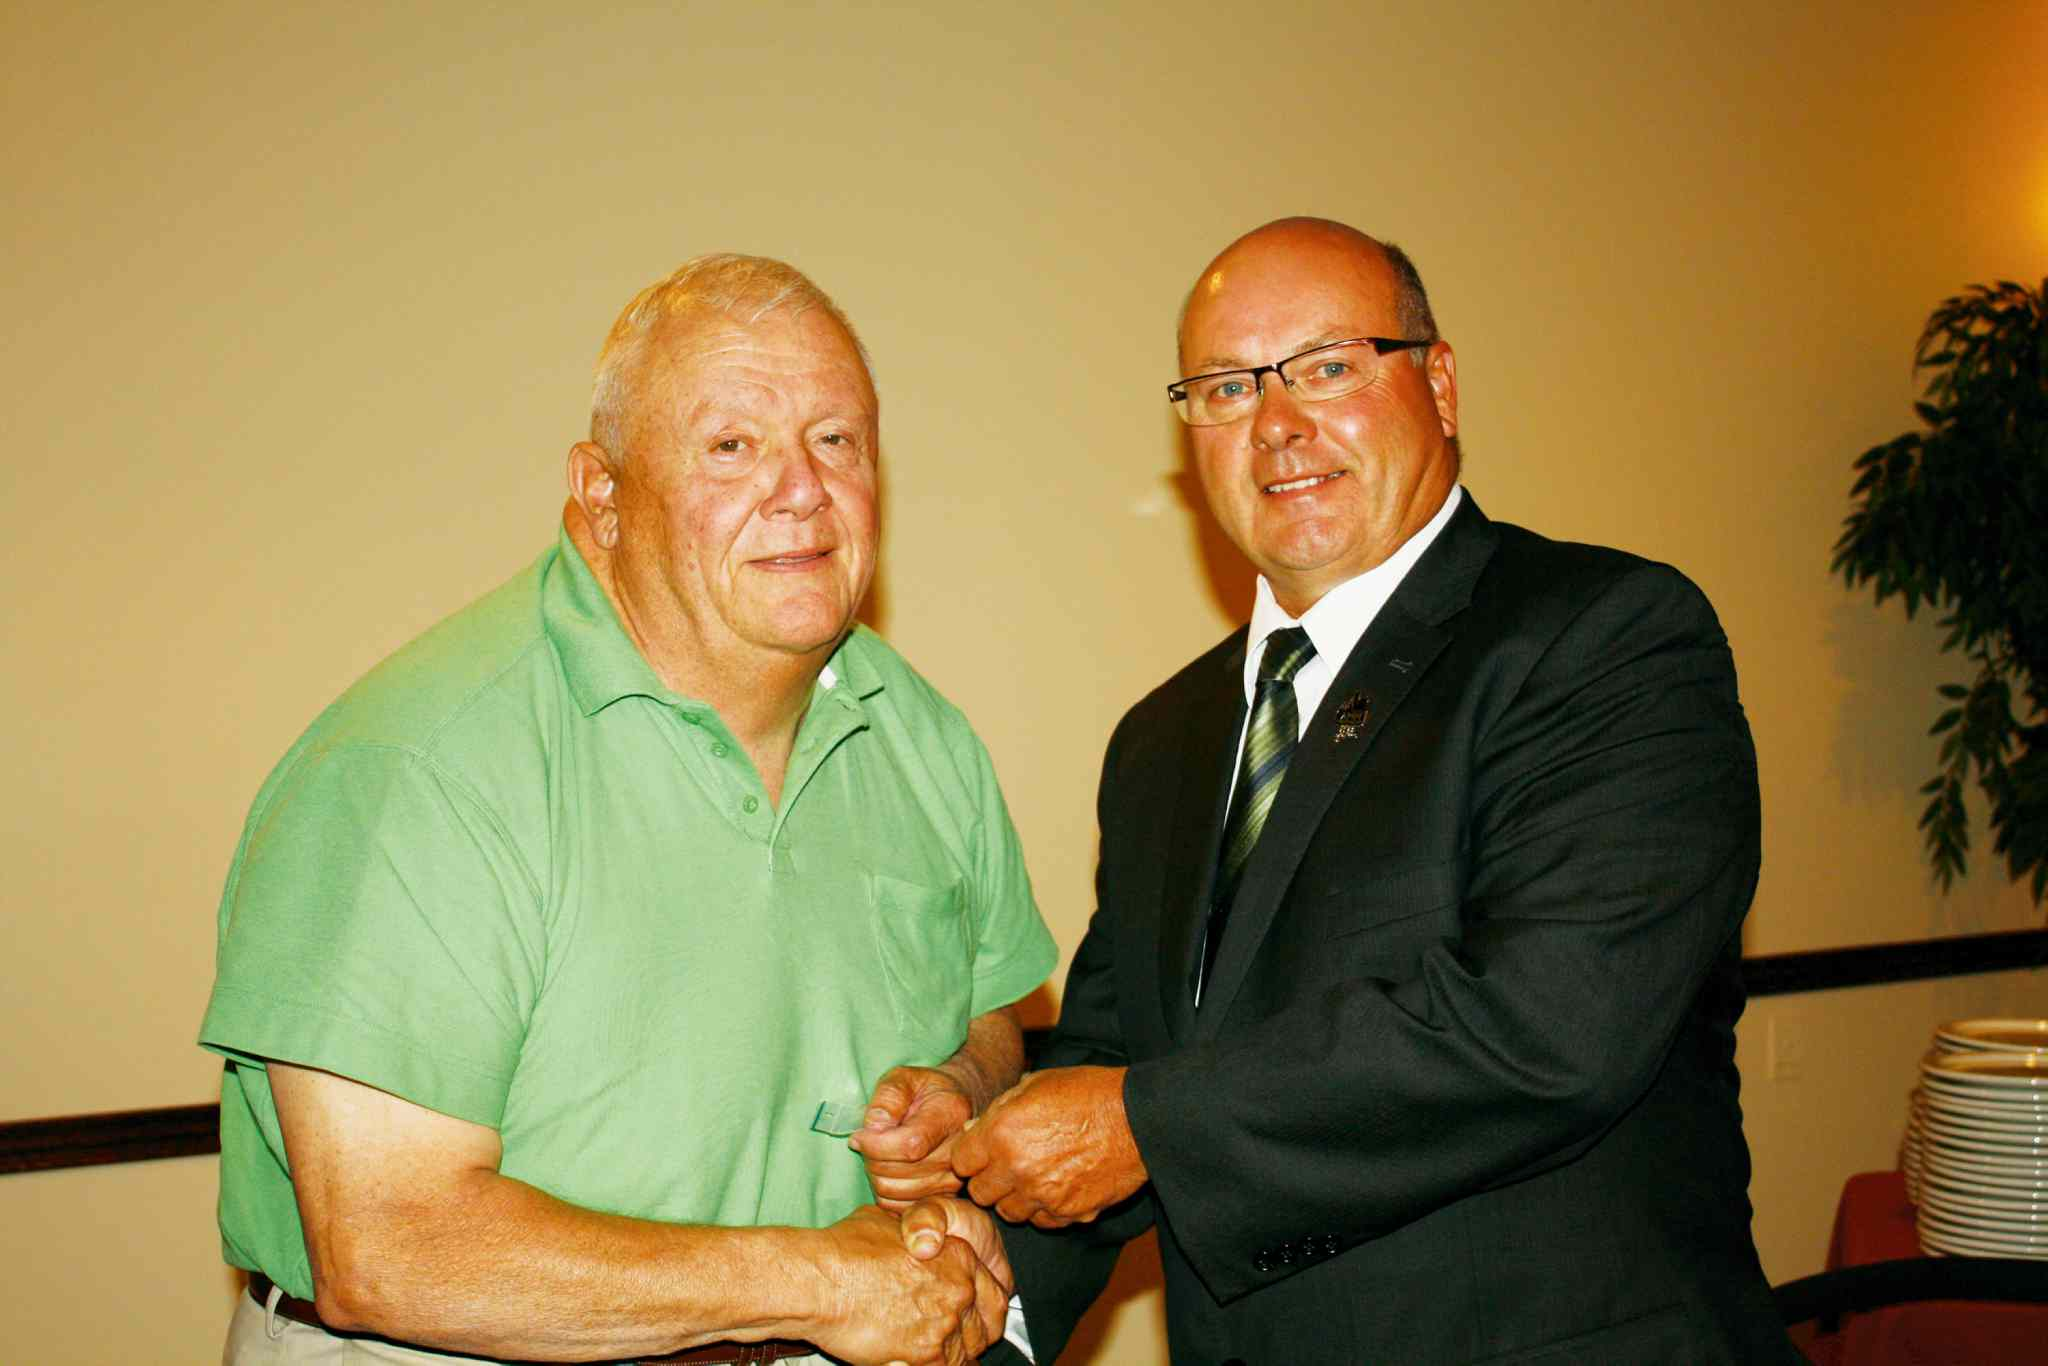 RM of Macdonald reeve Rodney Burns (left) receives an award for 25 years of service from Association of Manitoba Municipalities president Doug Dobrowolski.